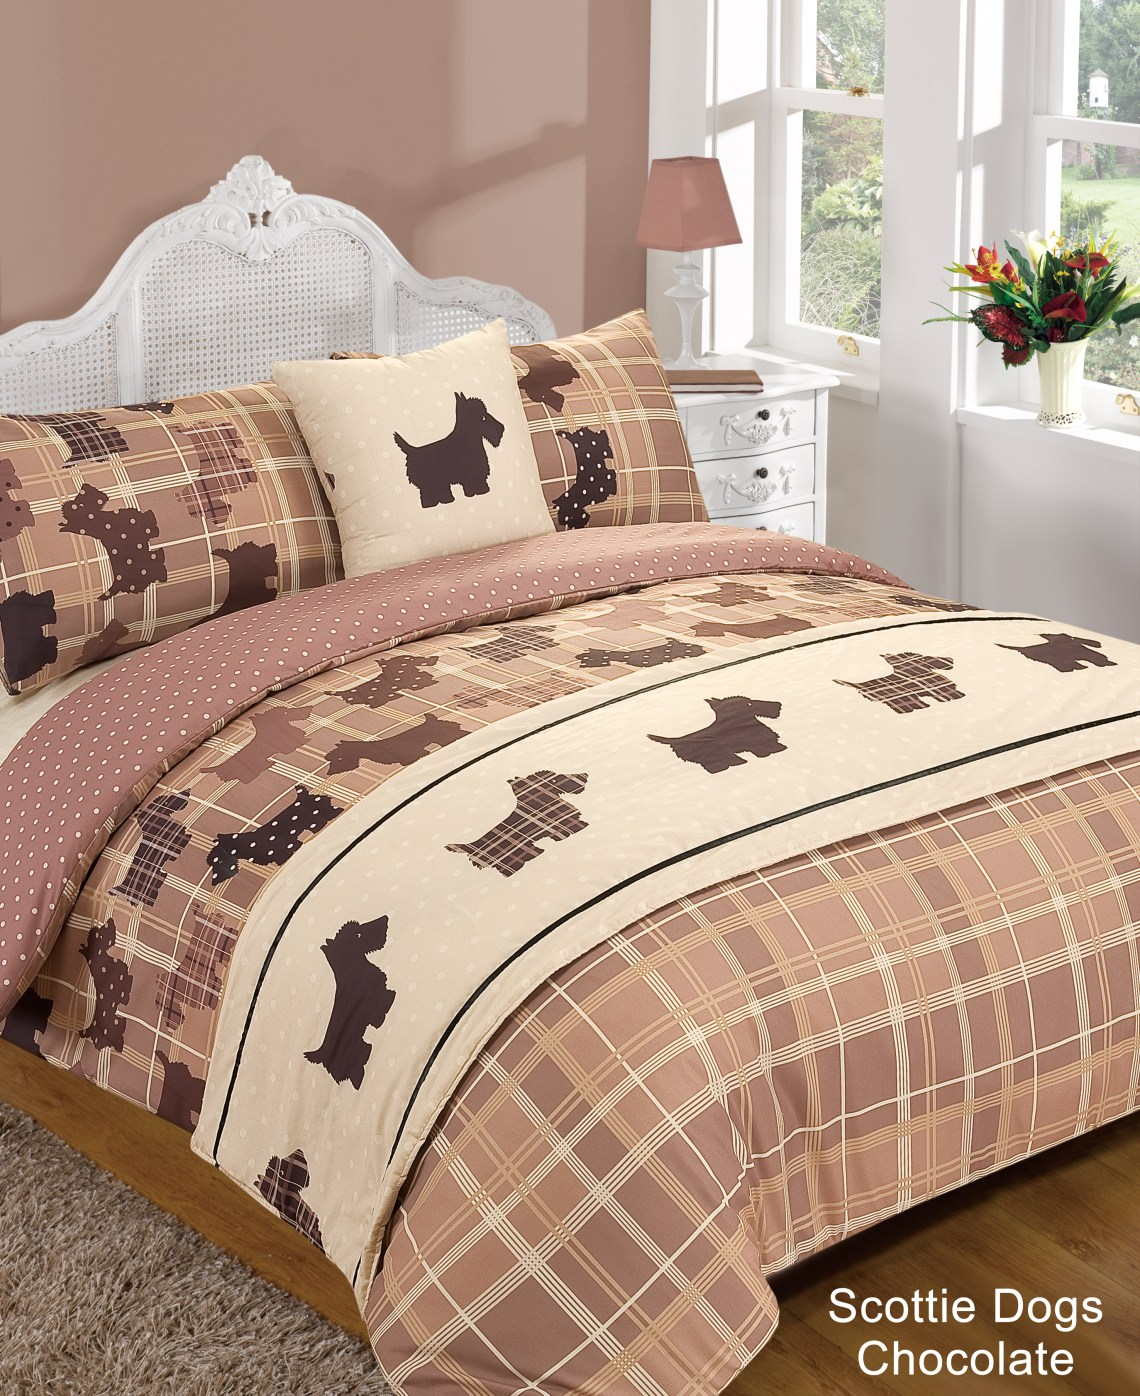 Amazing Bed Sheet Animal Print Bedspreads - scottie%20dogs%20chocolate  You Should Have_993859.jpg